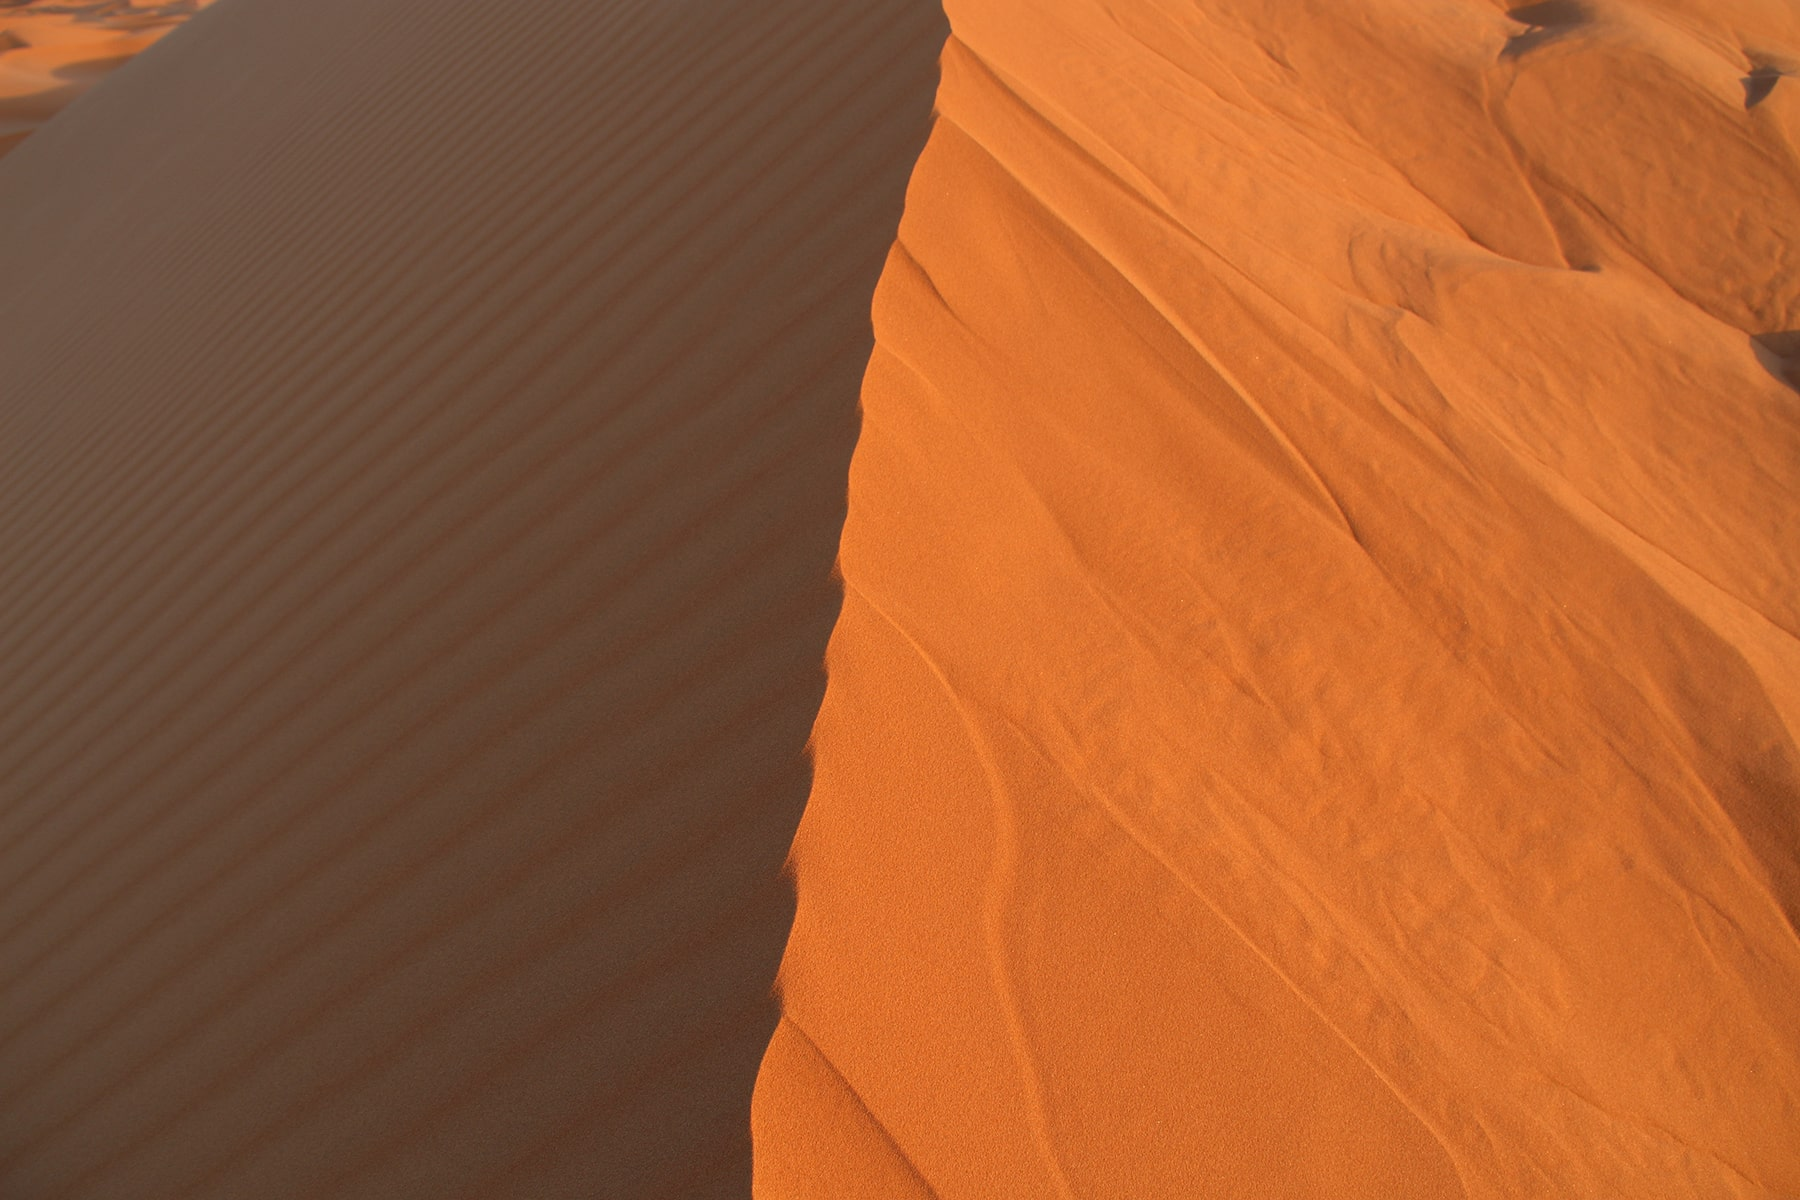 Sun and shade of Sahara desert dune